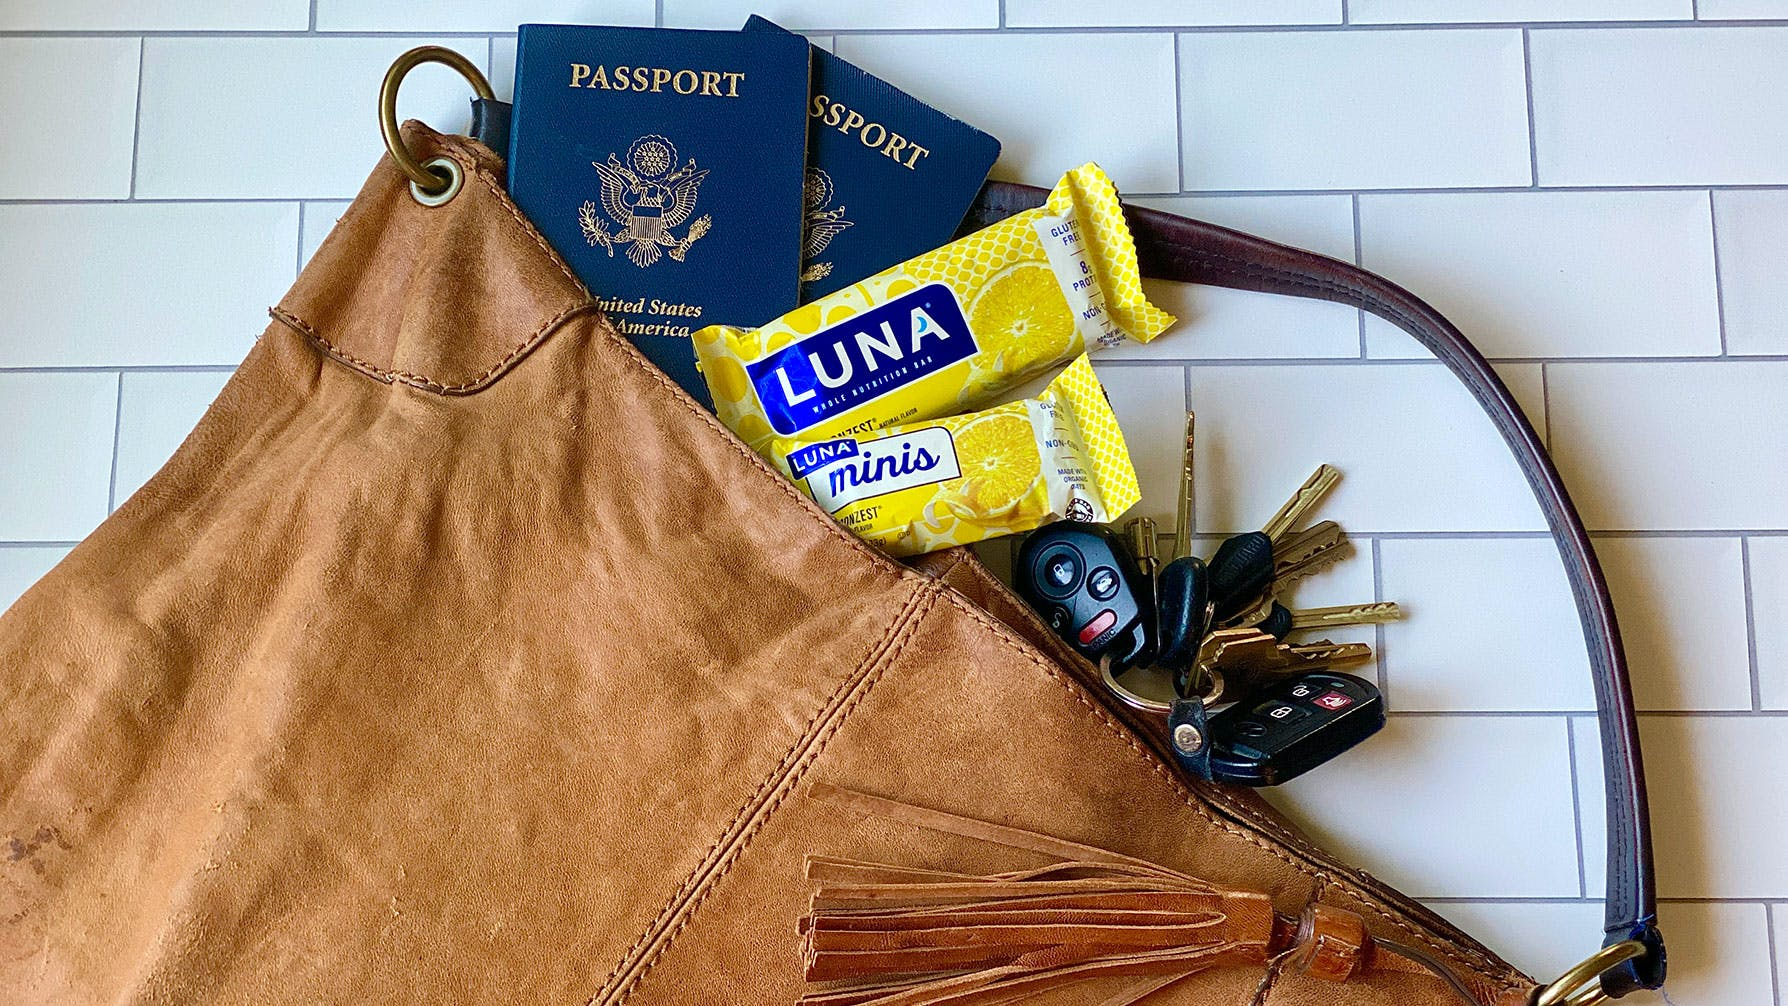 Purse packed with passports and LUNA Bars